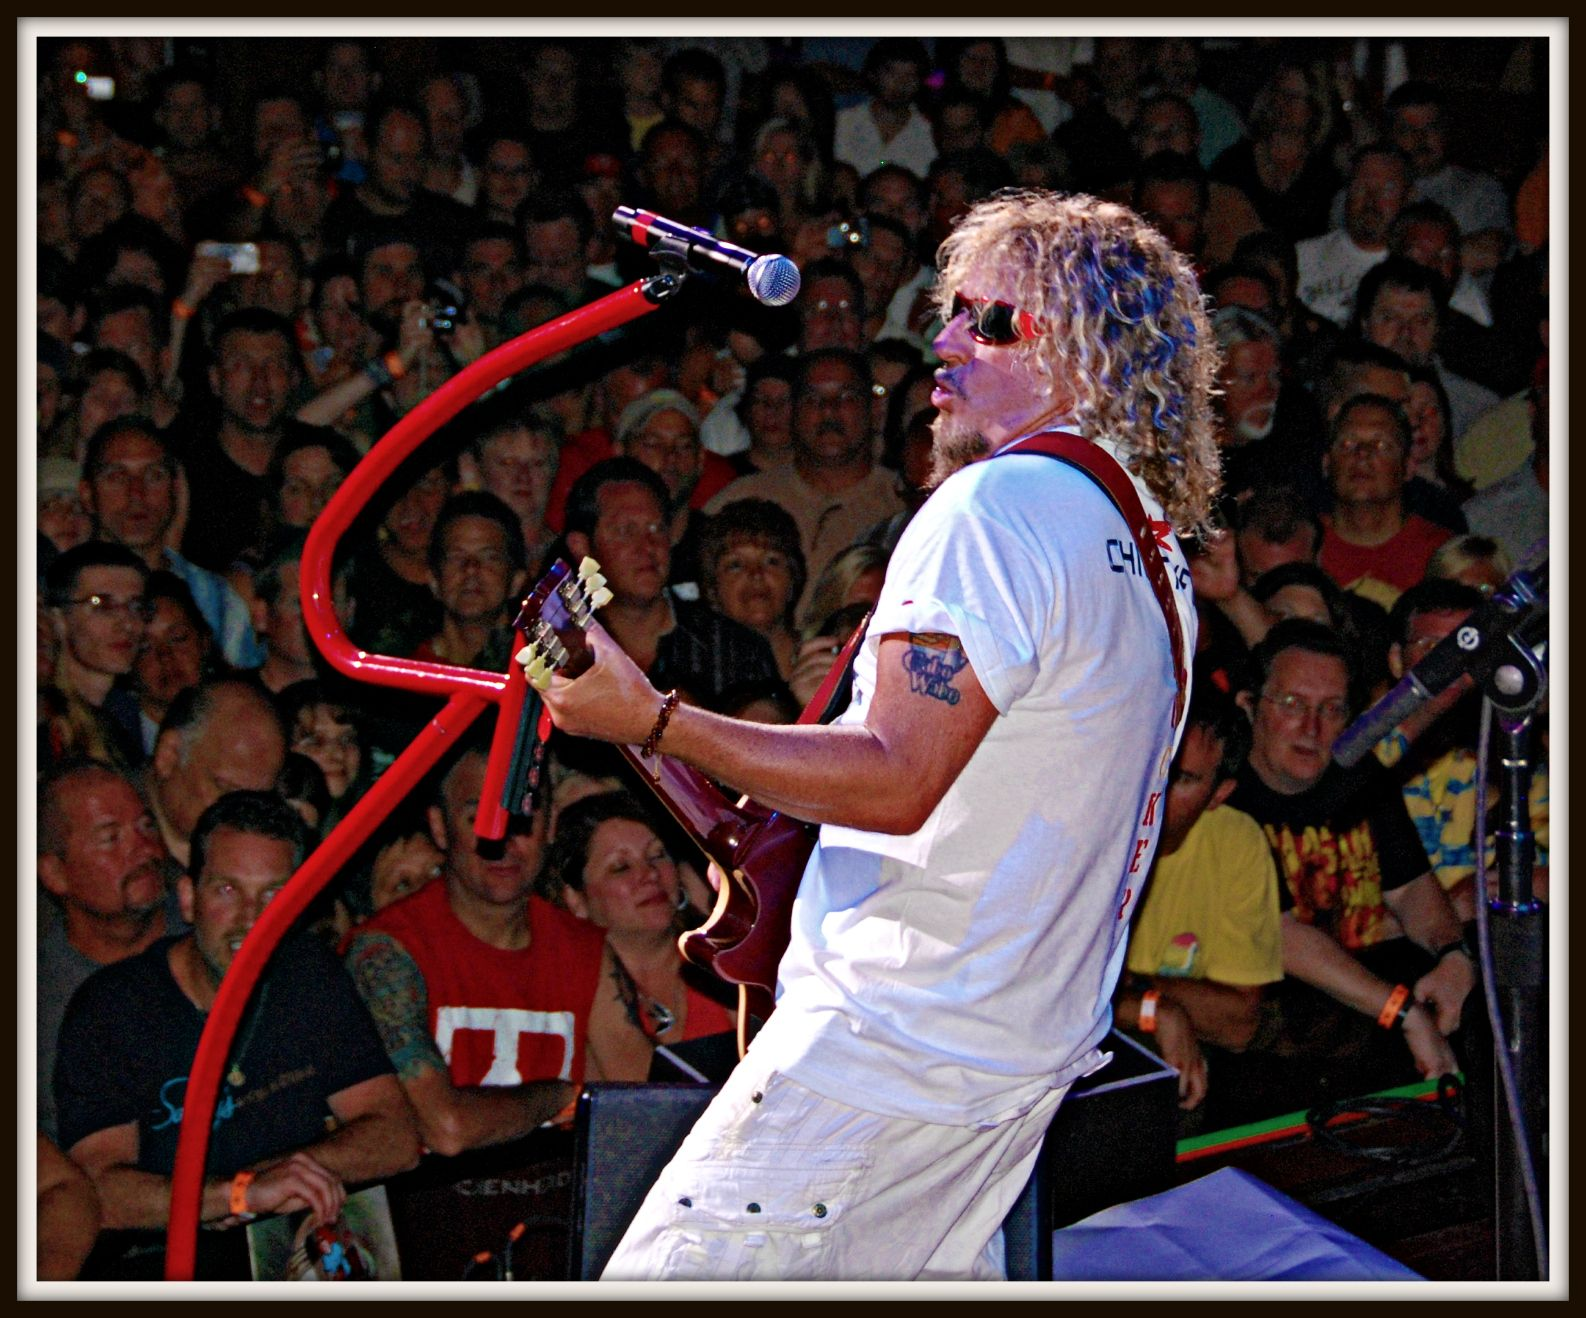 Sammy Hagar House Of Blues Atlantic City Nj 2011 Sammy Hagar Red Rocker Van Halen